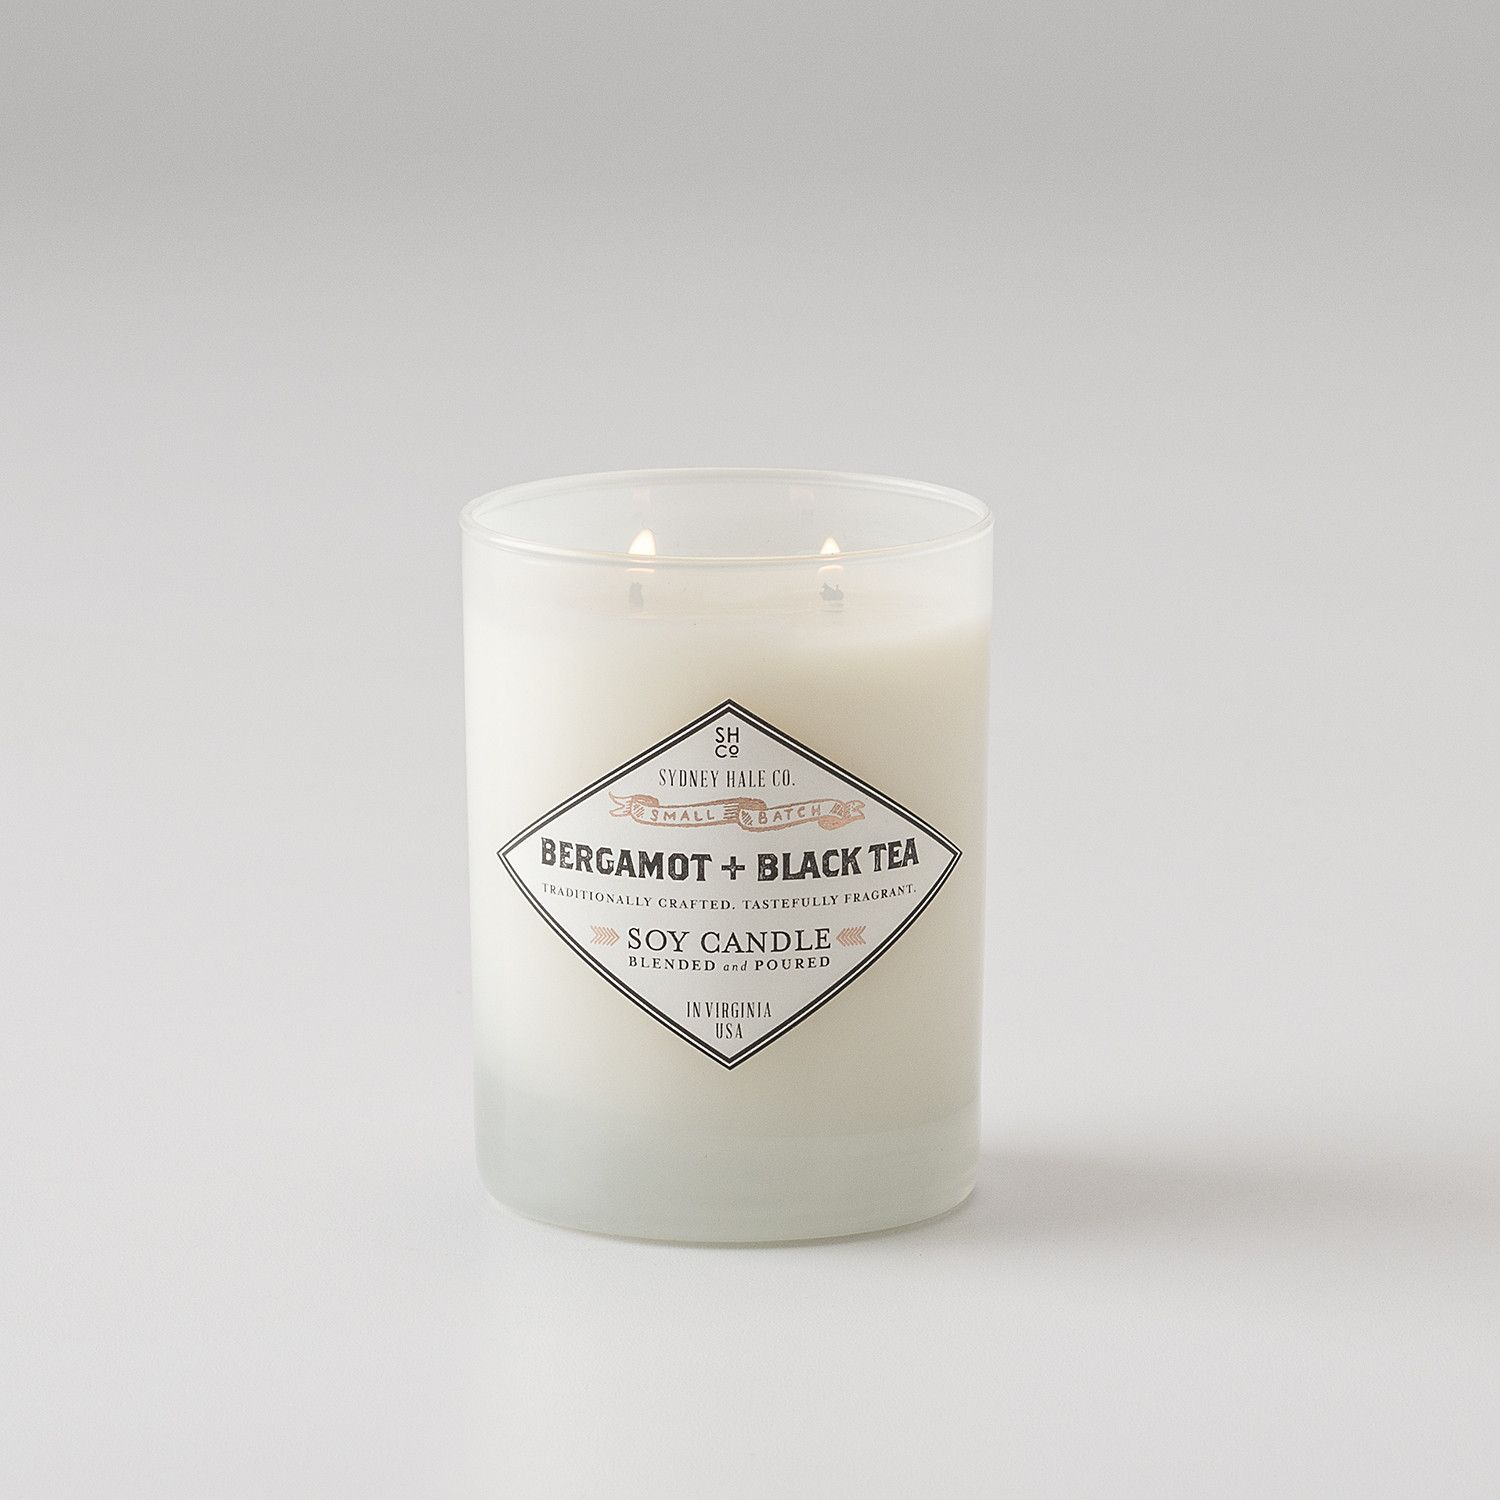 Sydney Hale Co Candle White Glass Candles White Candles Sydney Hale Candle